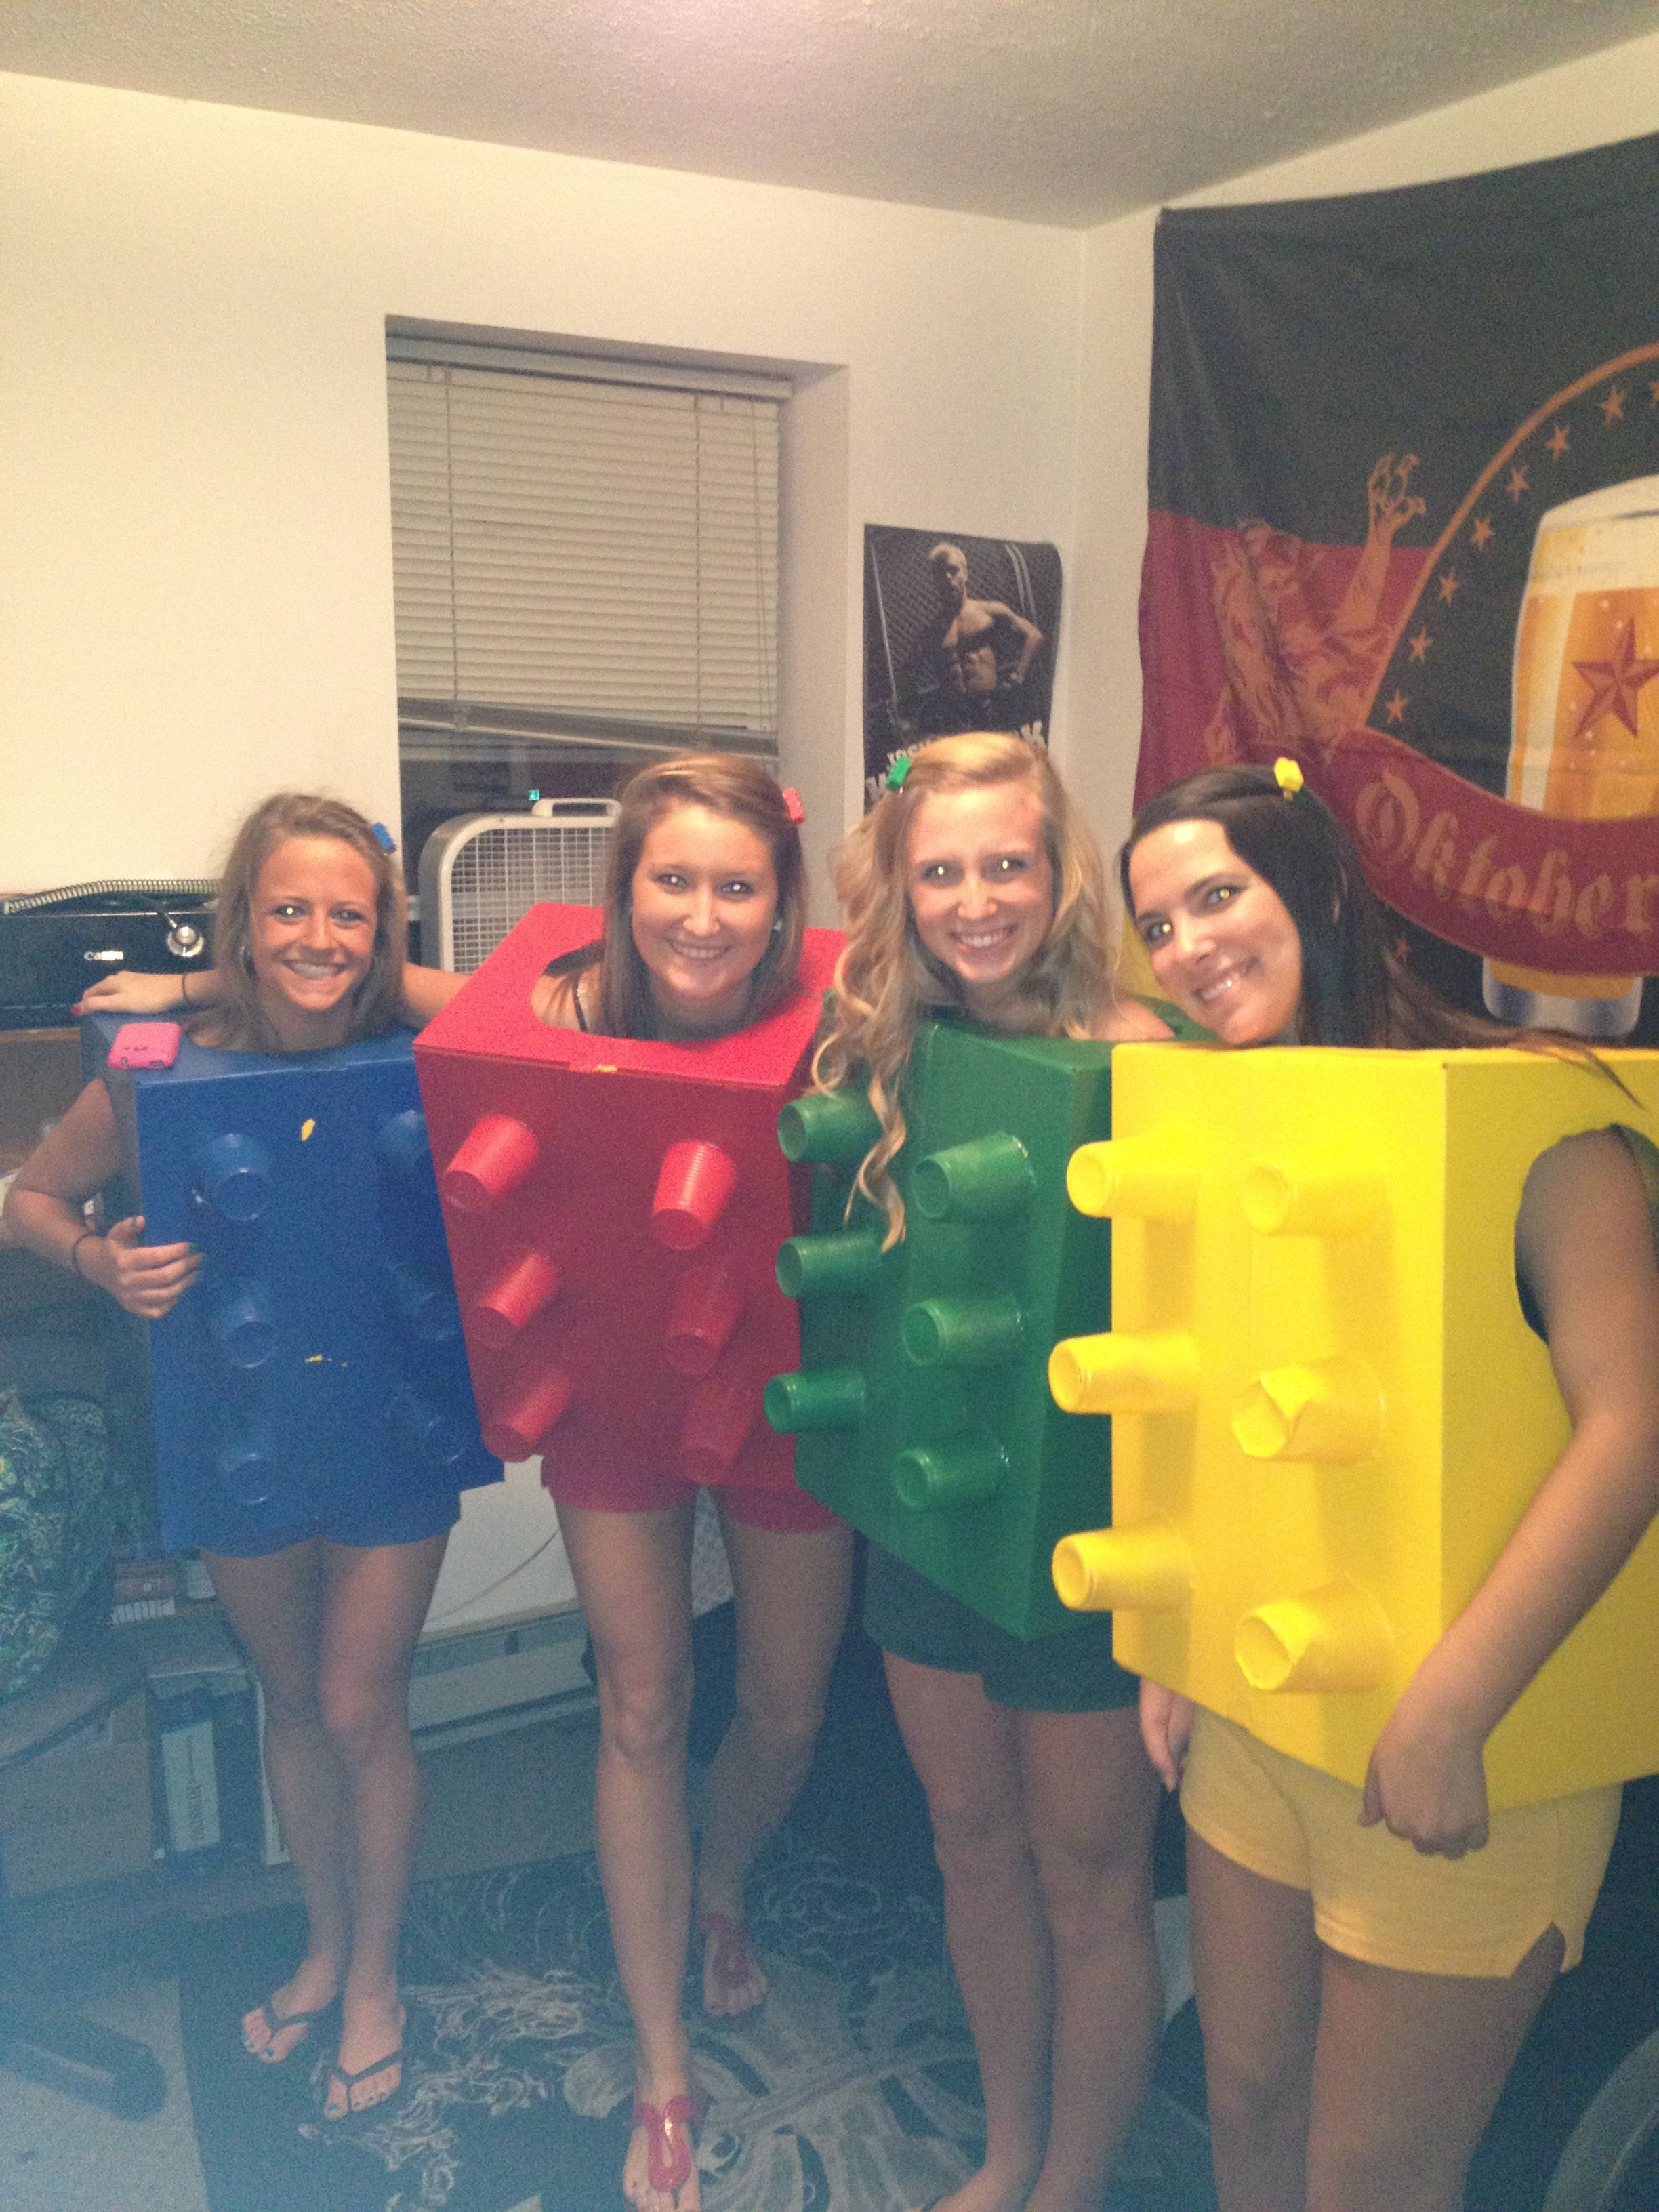 Friend Group Halloween Costumes Kids.Lego Halloween Costumes Card Board Box And Solo Cups Easy